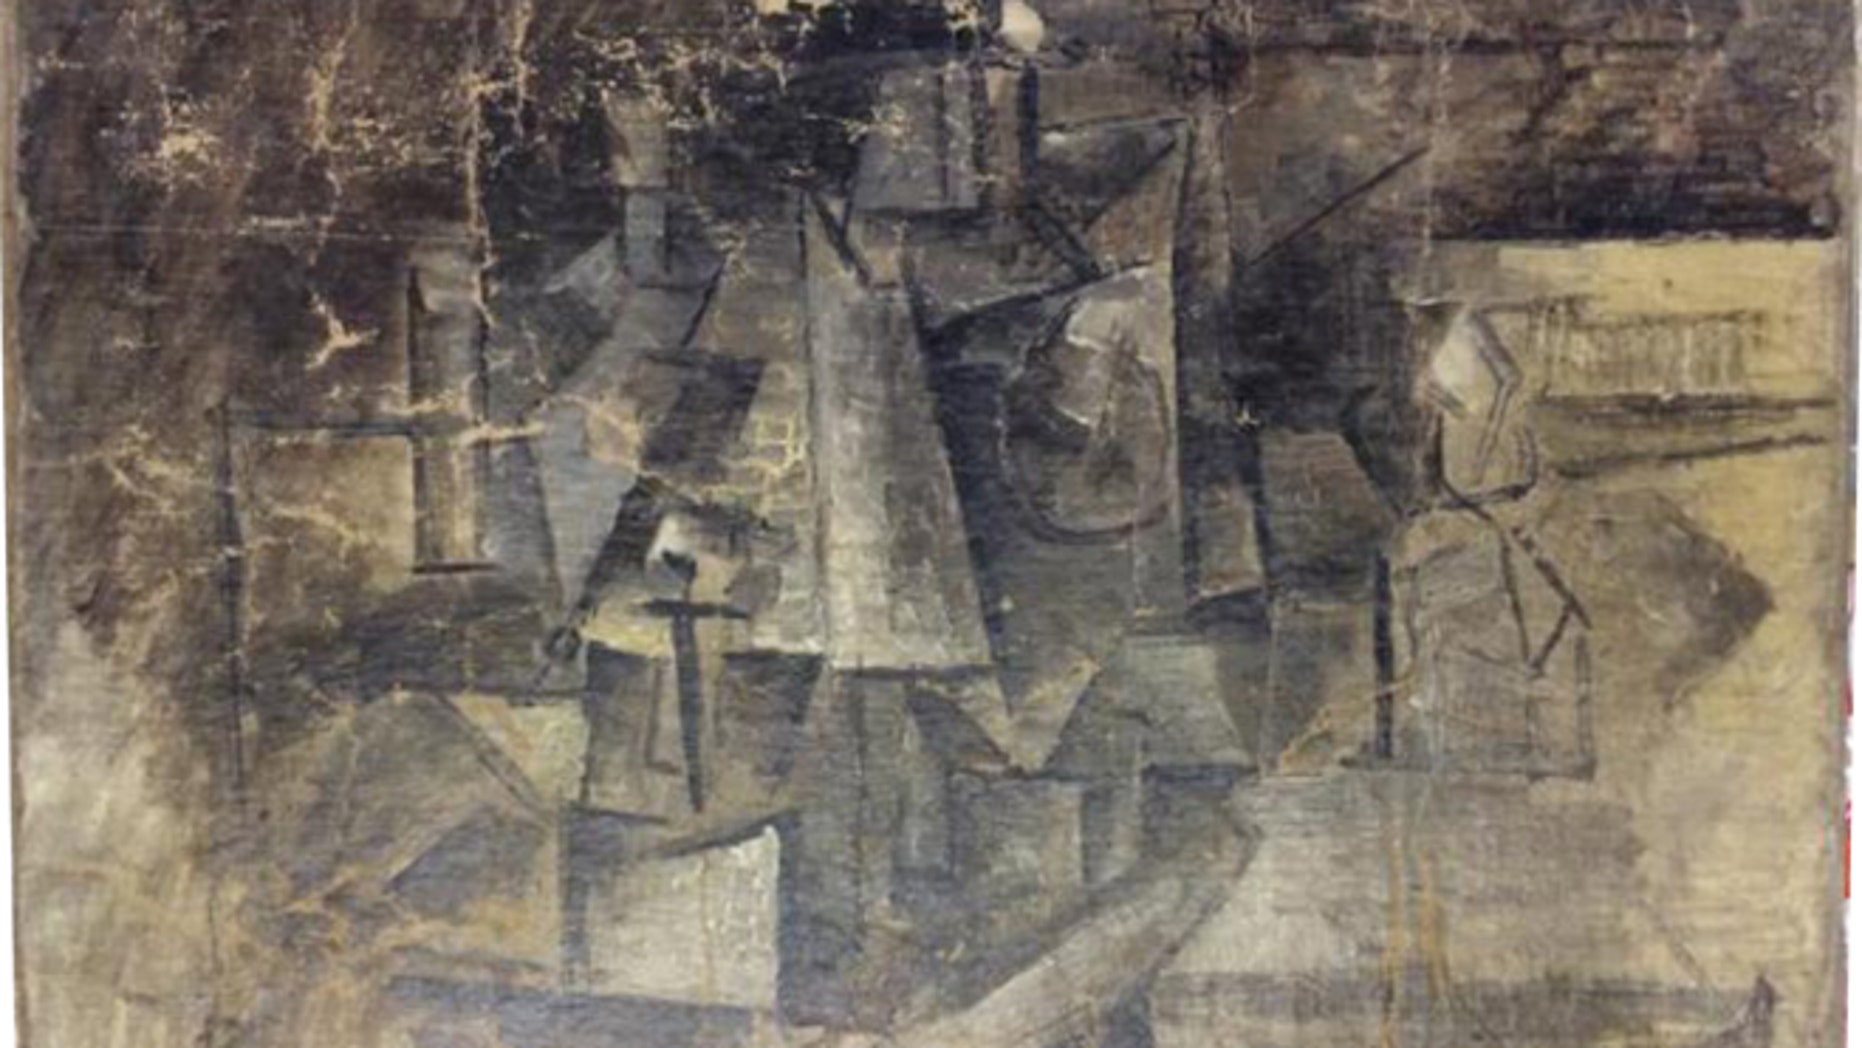 """This undated photo provided by the United States Department of Justice, shows a cubist painting entitled The Hairdresser by Pablo Picasso. Authorities say the painting worth millions of dollars was stolen in France and smuggled into the U.S. by someone who falsely labeled it as an """"art craft"""" worth about $37 when it was shipped. U.S. Attorney for the Eastern District of New York Loretta Lynch filed a civil forfeiture complaint Thursday, Feb. 26, 2015, over the  painting. (AP Photo/U.S Department of Justice)"""